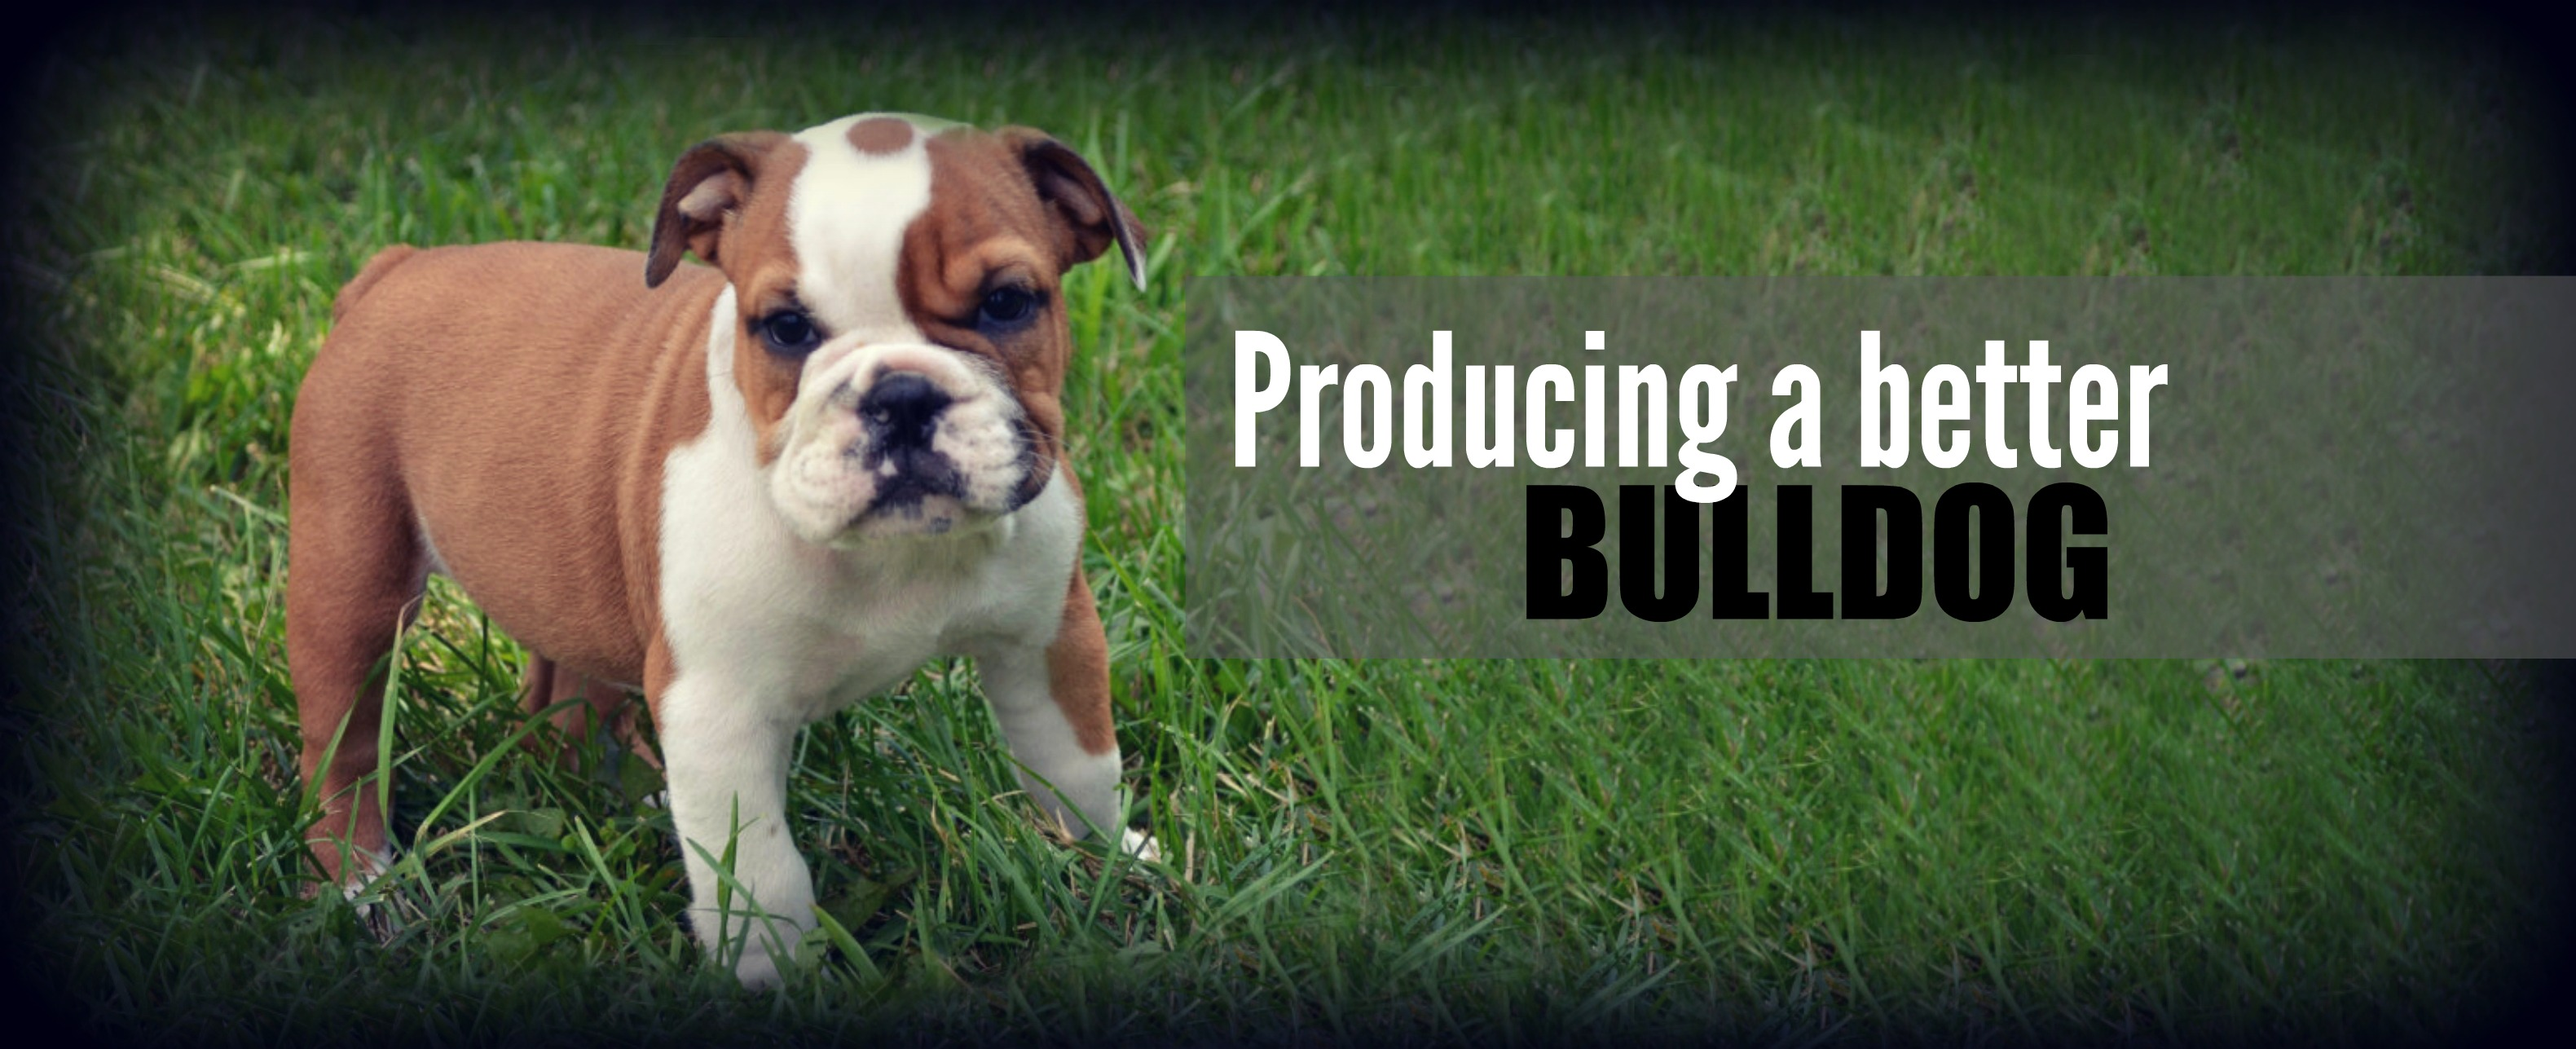 english bulldogs for sale with papers Review how much english bulldog puppies for sale sell for below the current median price for all english bulldogs sold is $2,12250 this is the price you can expect to budget for an english bulldog with papers but without breeding rights nor show quality.